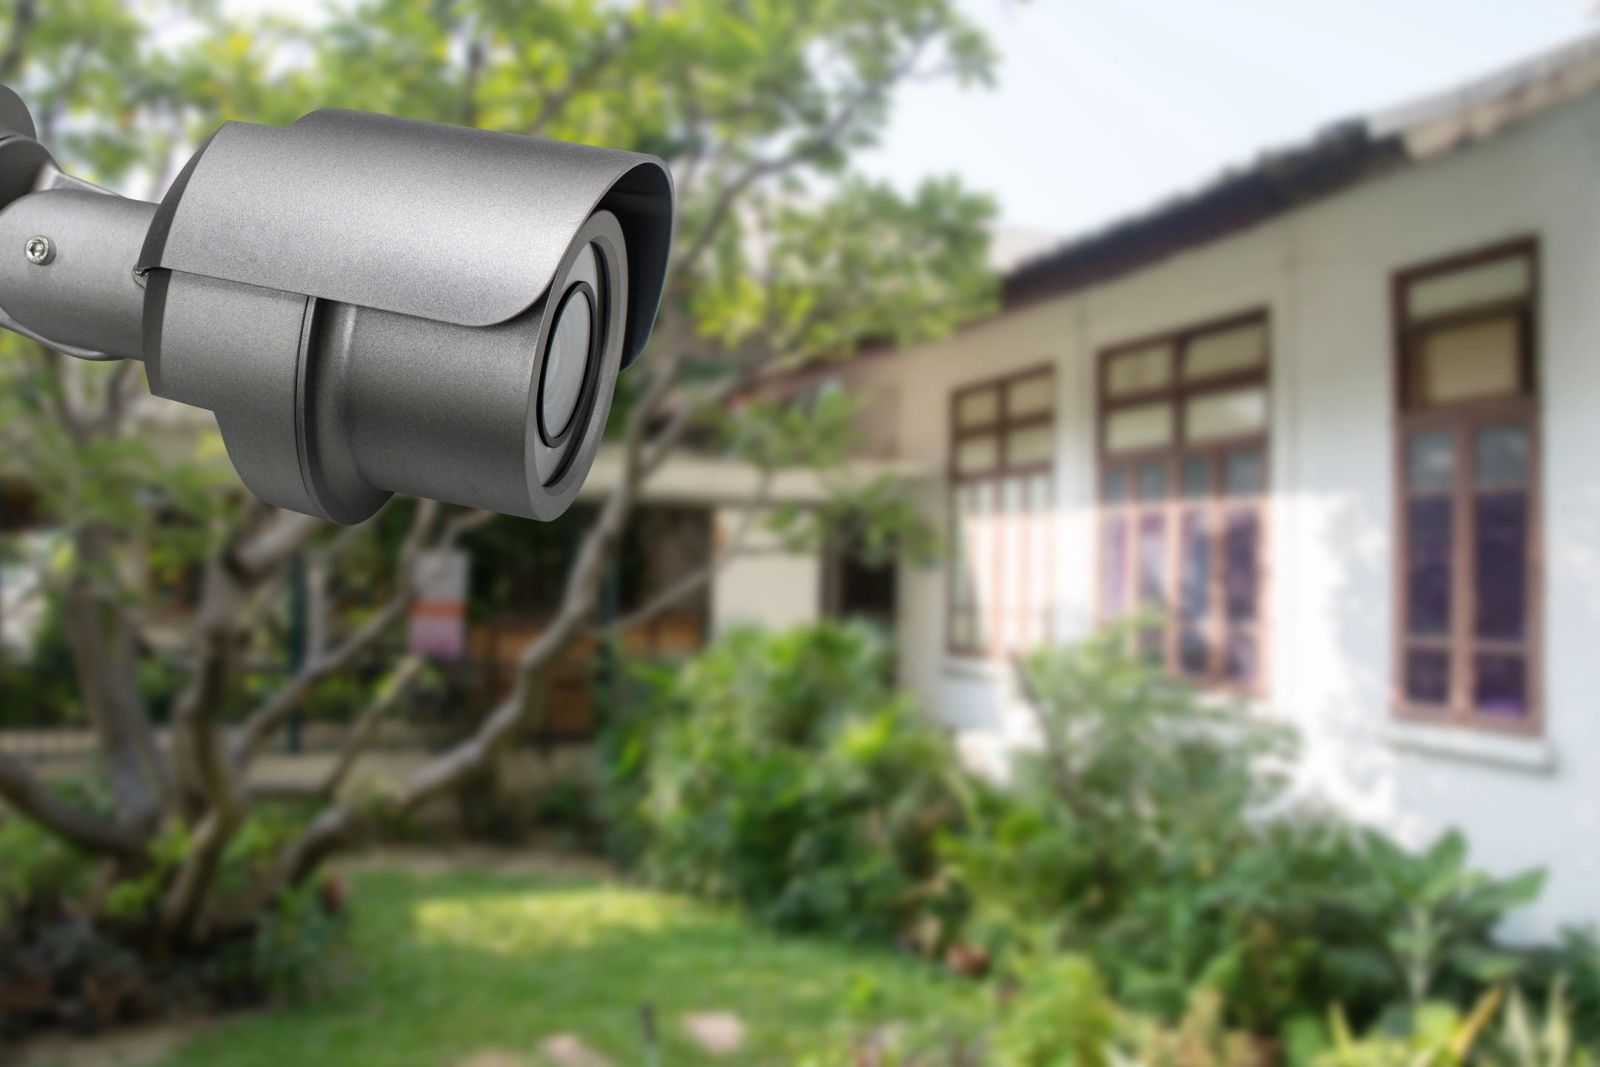 Black home security camera looks over the exterior of a property